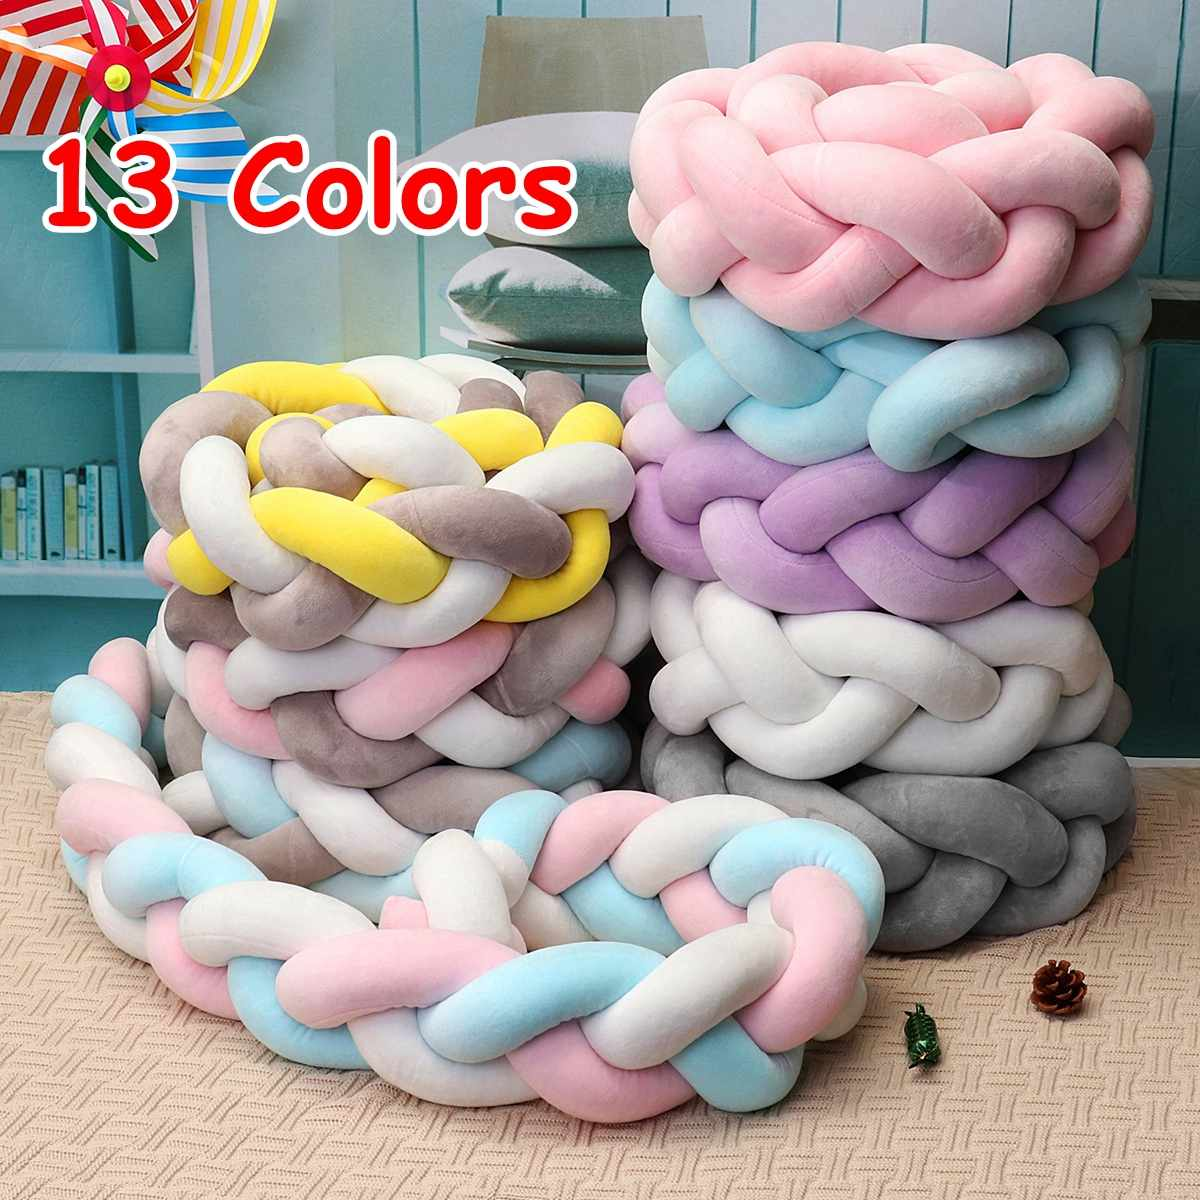 1.5m Minimalism Cotton Baby Bedding Crib Bumpers Crea.tive Braided Long Knot Ball Pillow Protector Cushion Newborns Baby